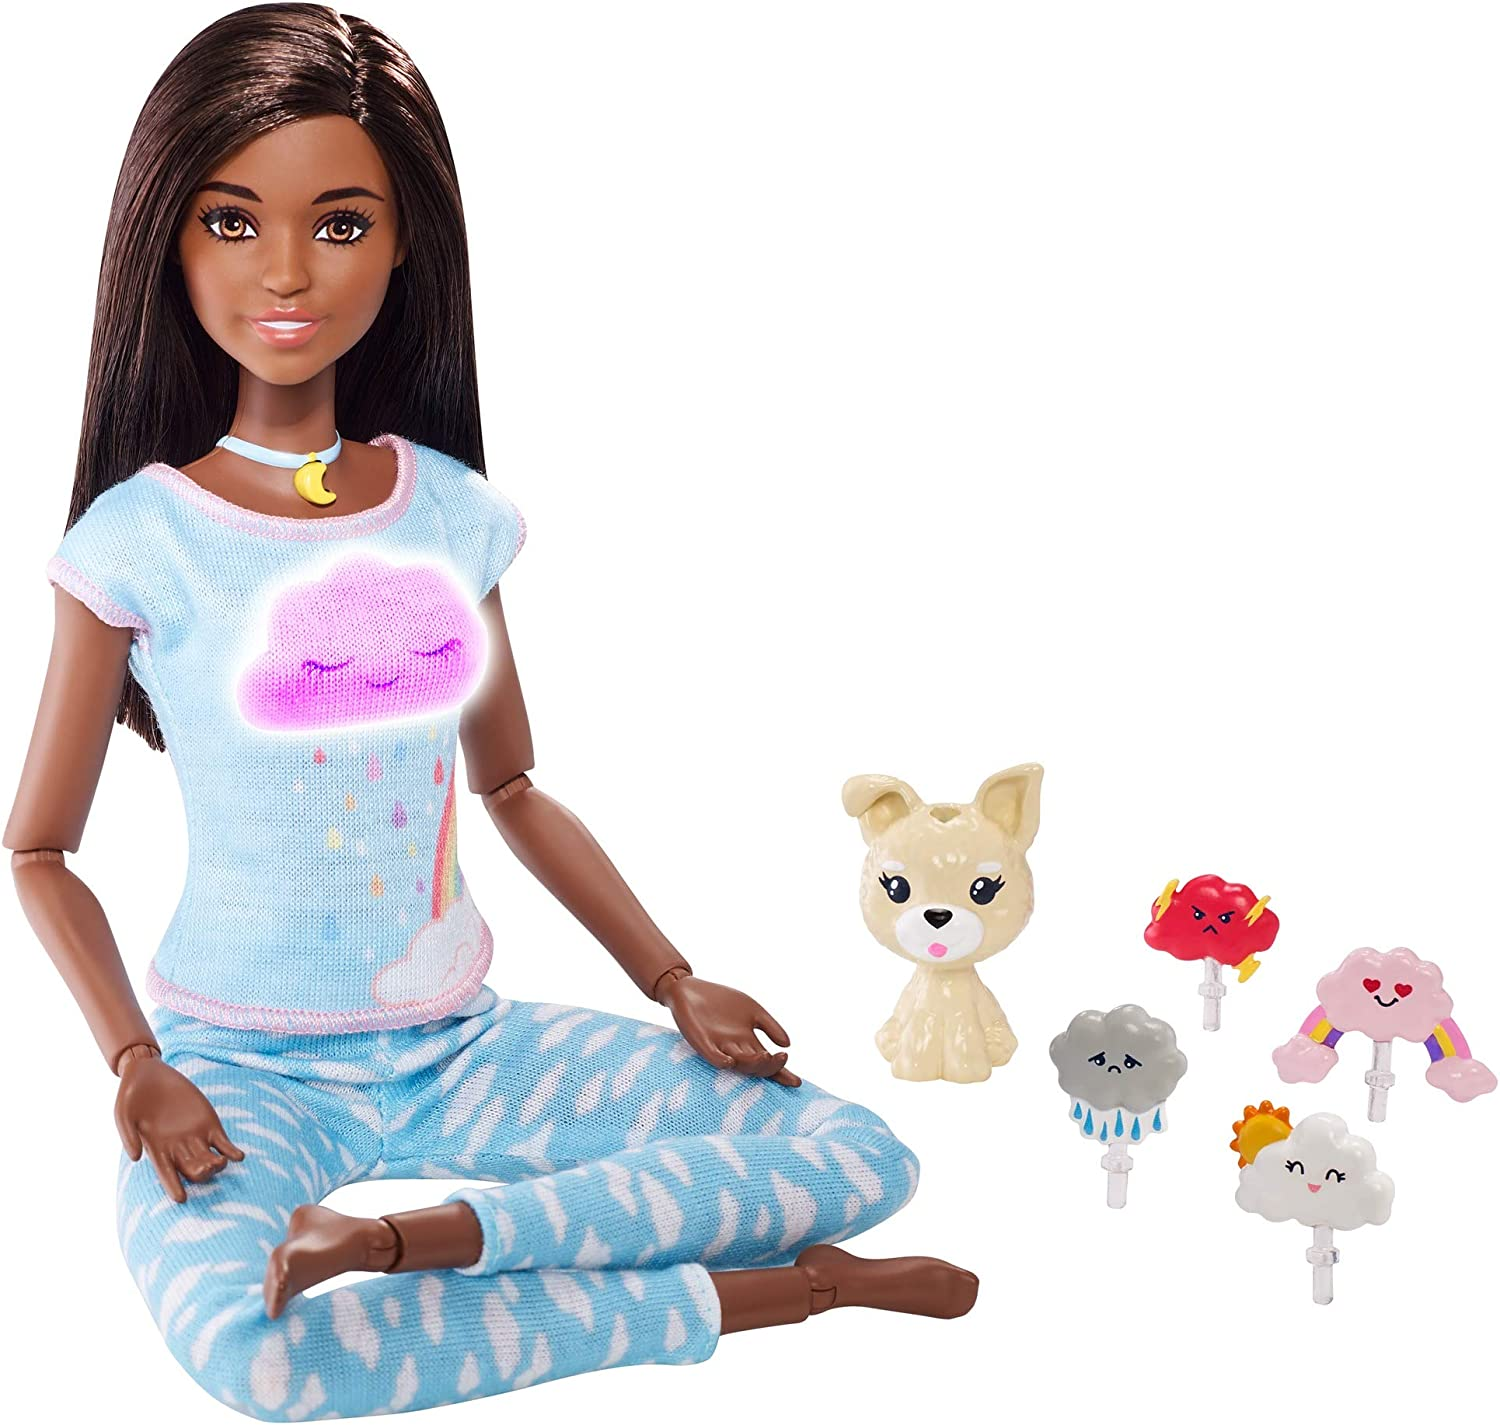 Barbie Breathe with Me Meditation Doll, Brunette, with 5 Lights & Guided Meditation Exercises, Puppy and 4 Emoji Accessories, Gift for Kids 3 to 8 Years Old